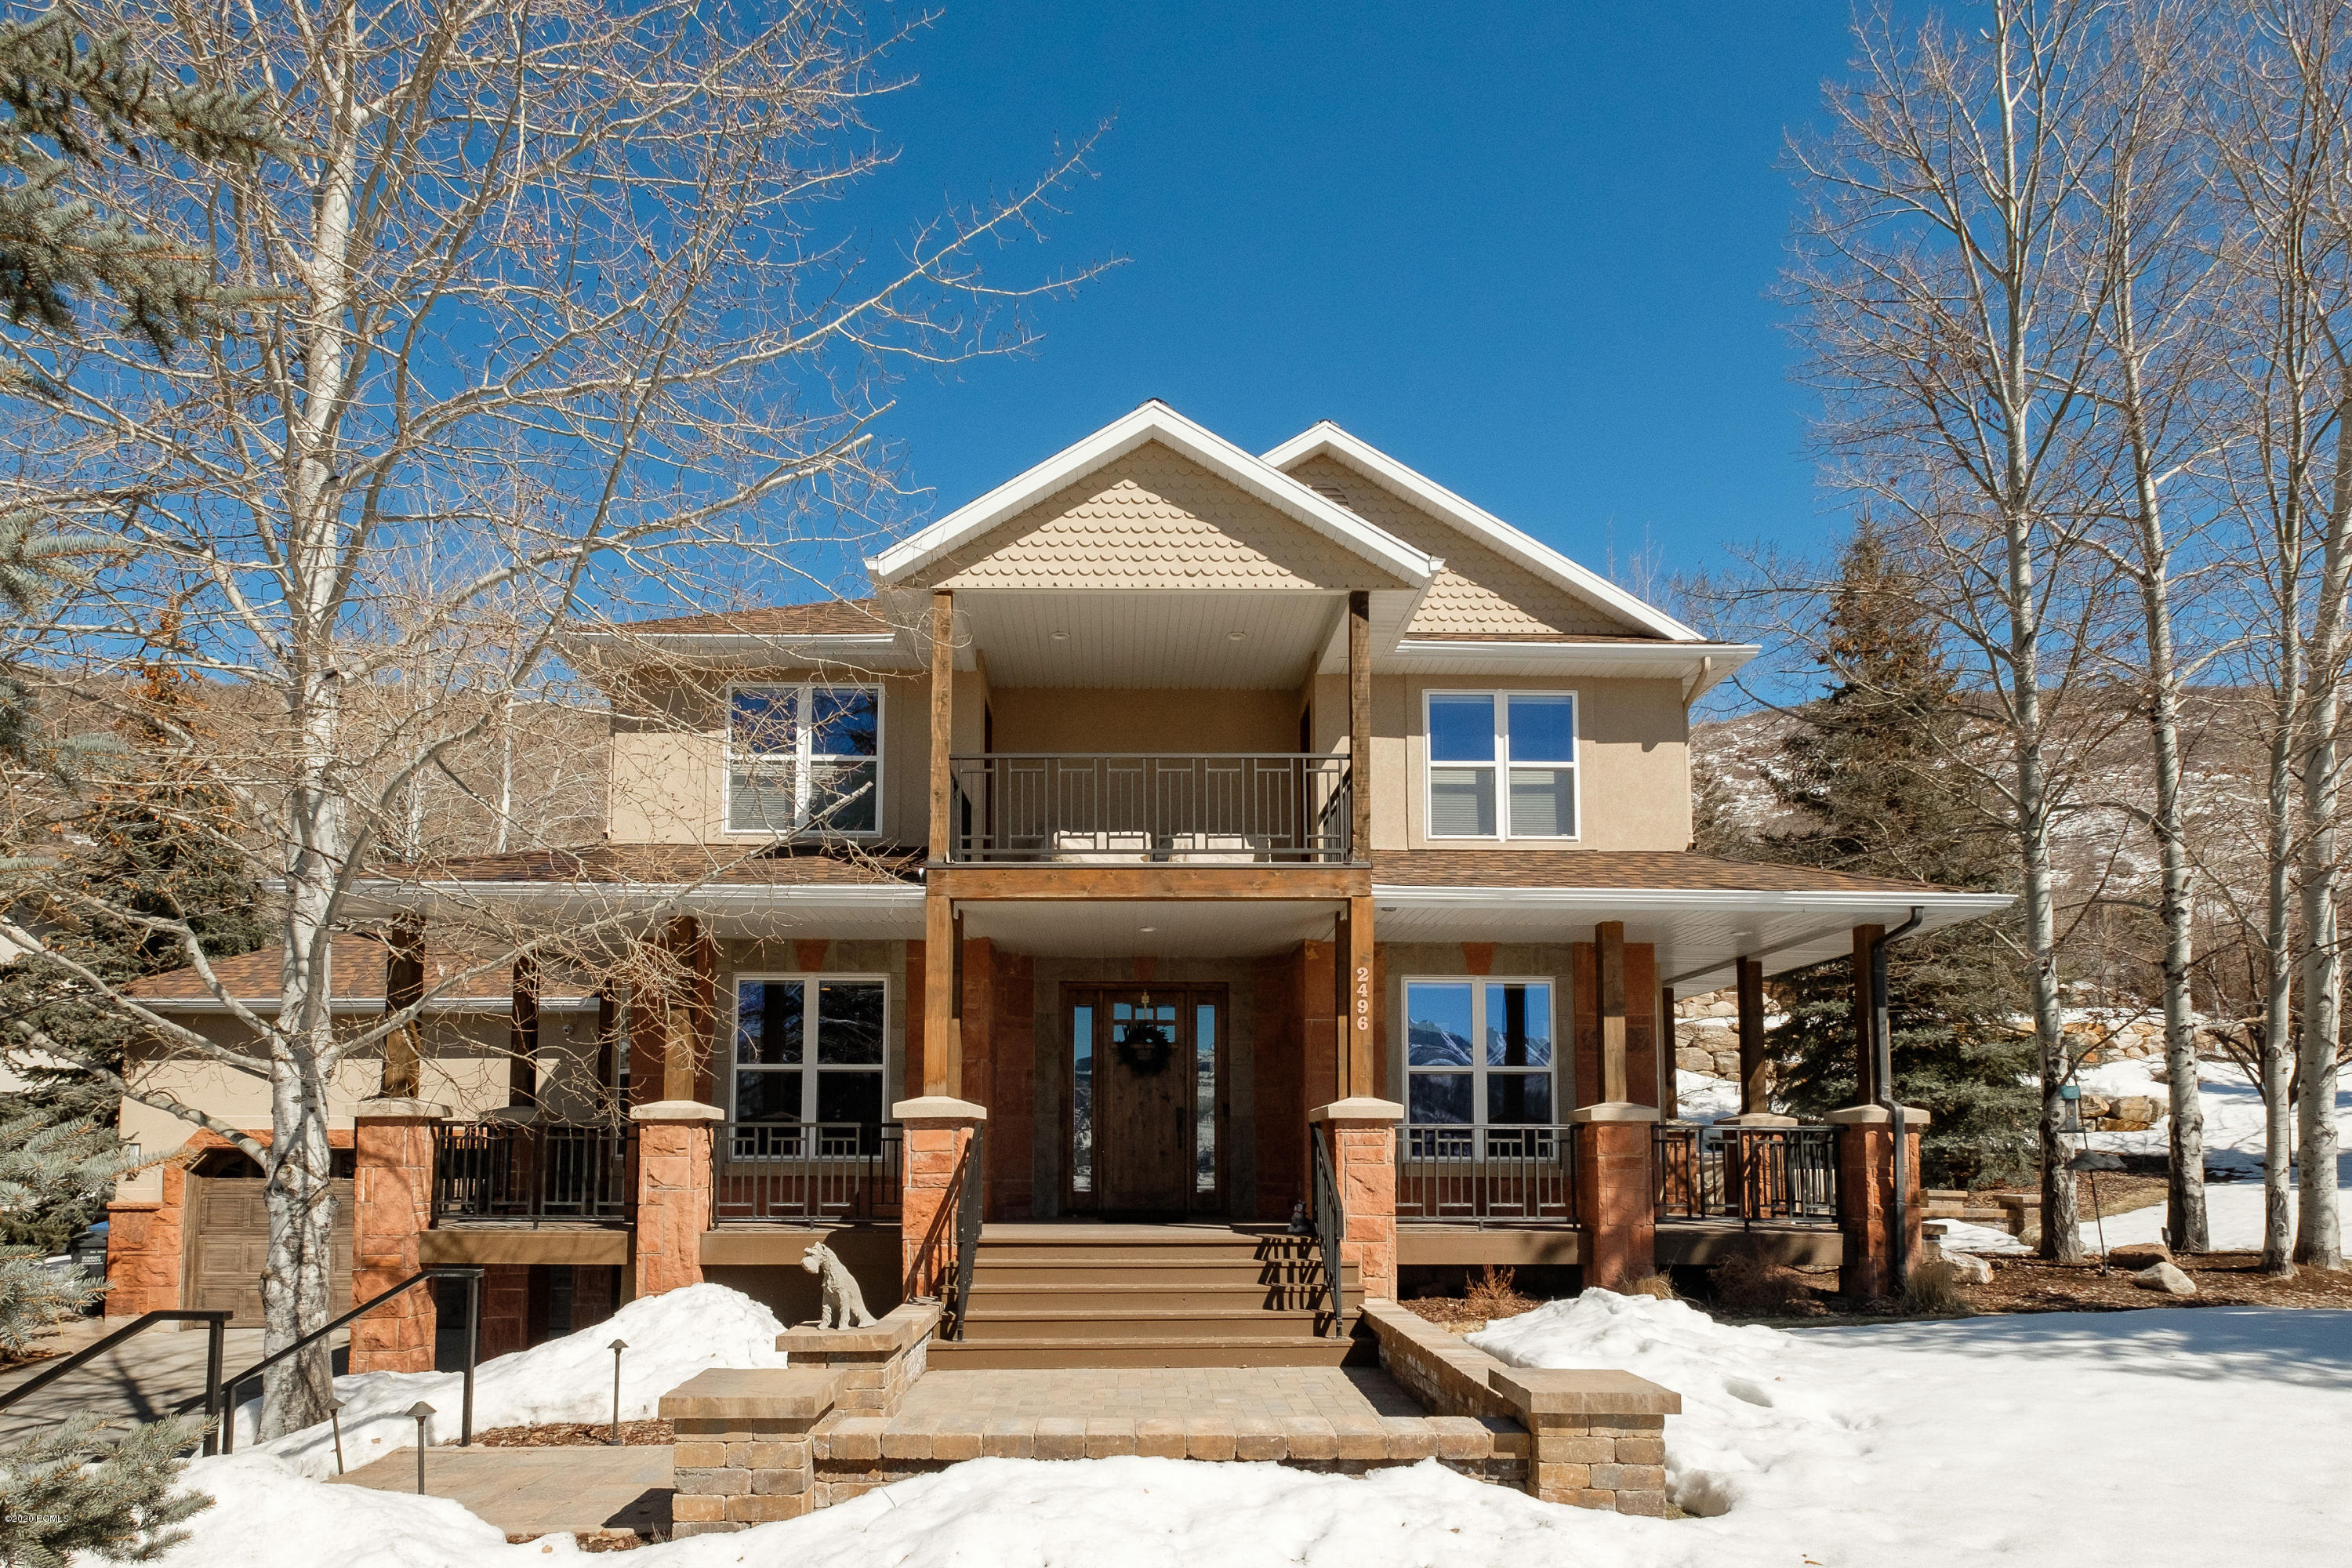 2496 Daybreaker Drive, Park City, Utah 84098, 5 Bedrooms Bedrooms, ,4 BathroomsBathrooms,Single Family,For Sale,Daybreaker,12000807